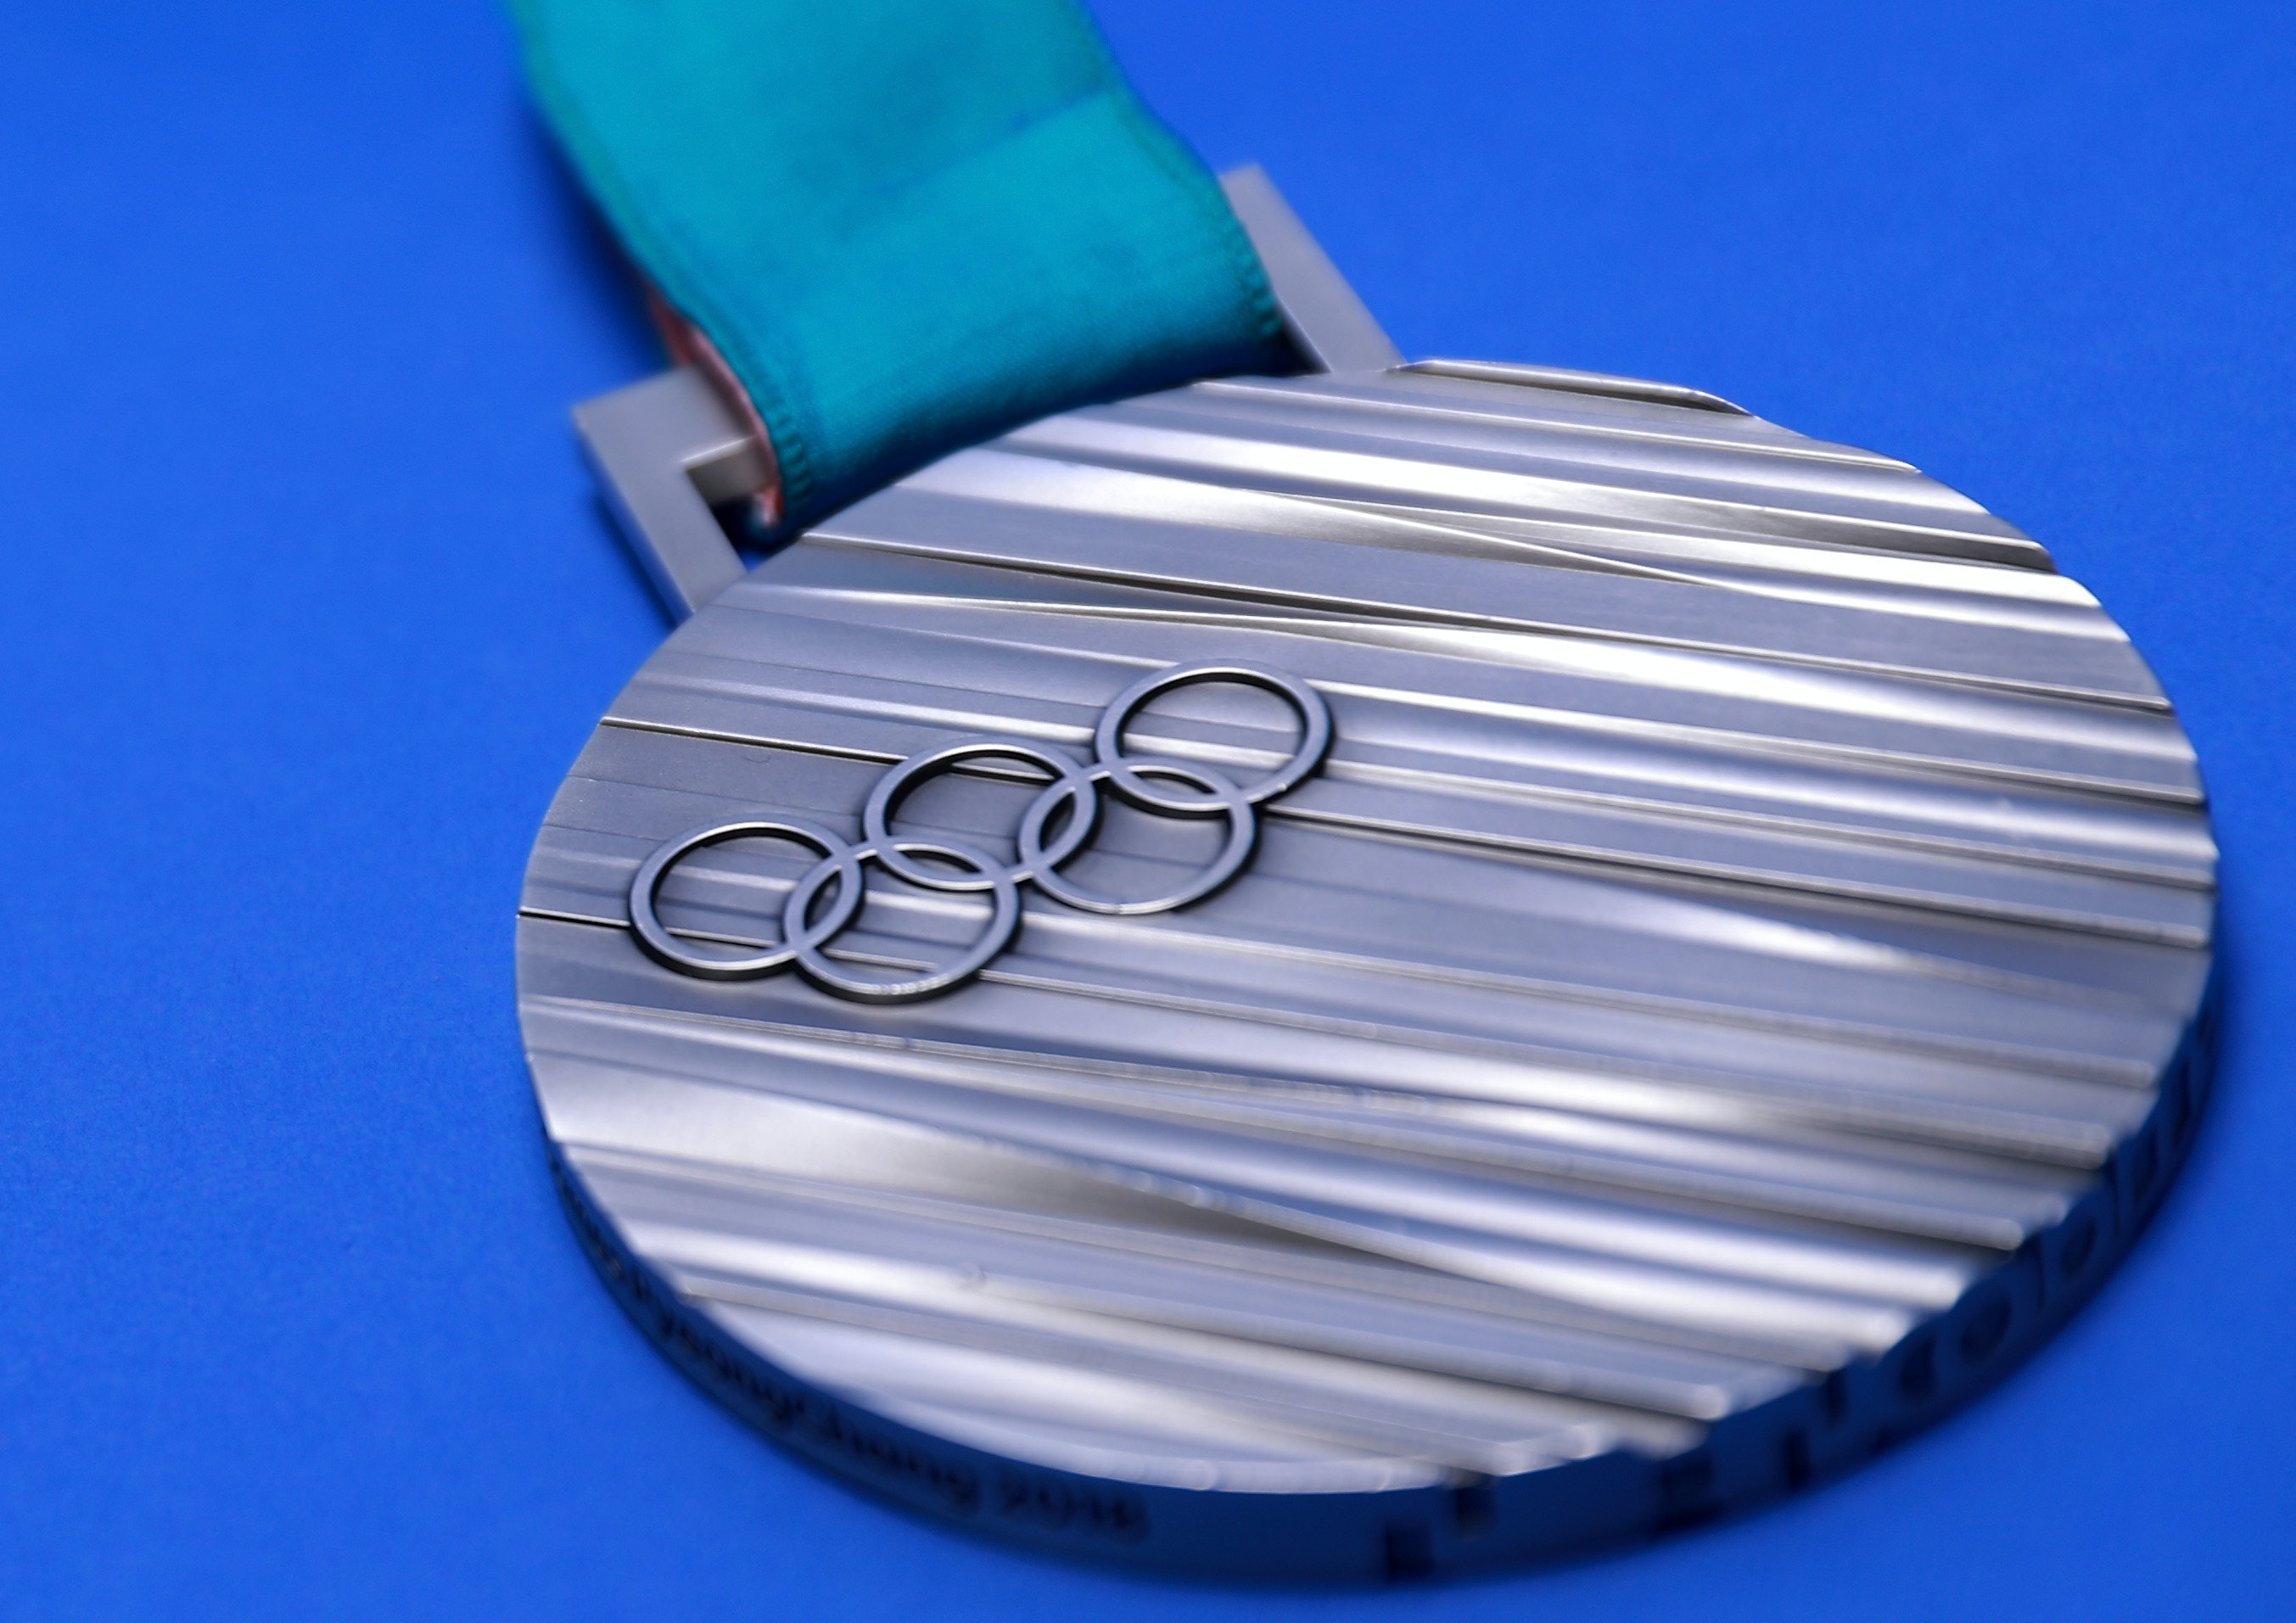 How Much Is A Silver Medal Worth? The 2018 Winter Olympics